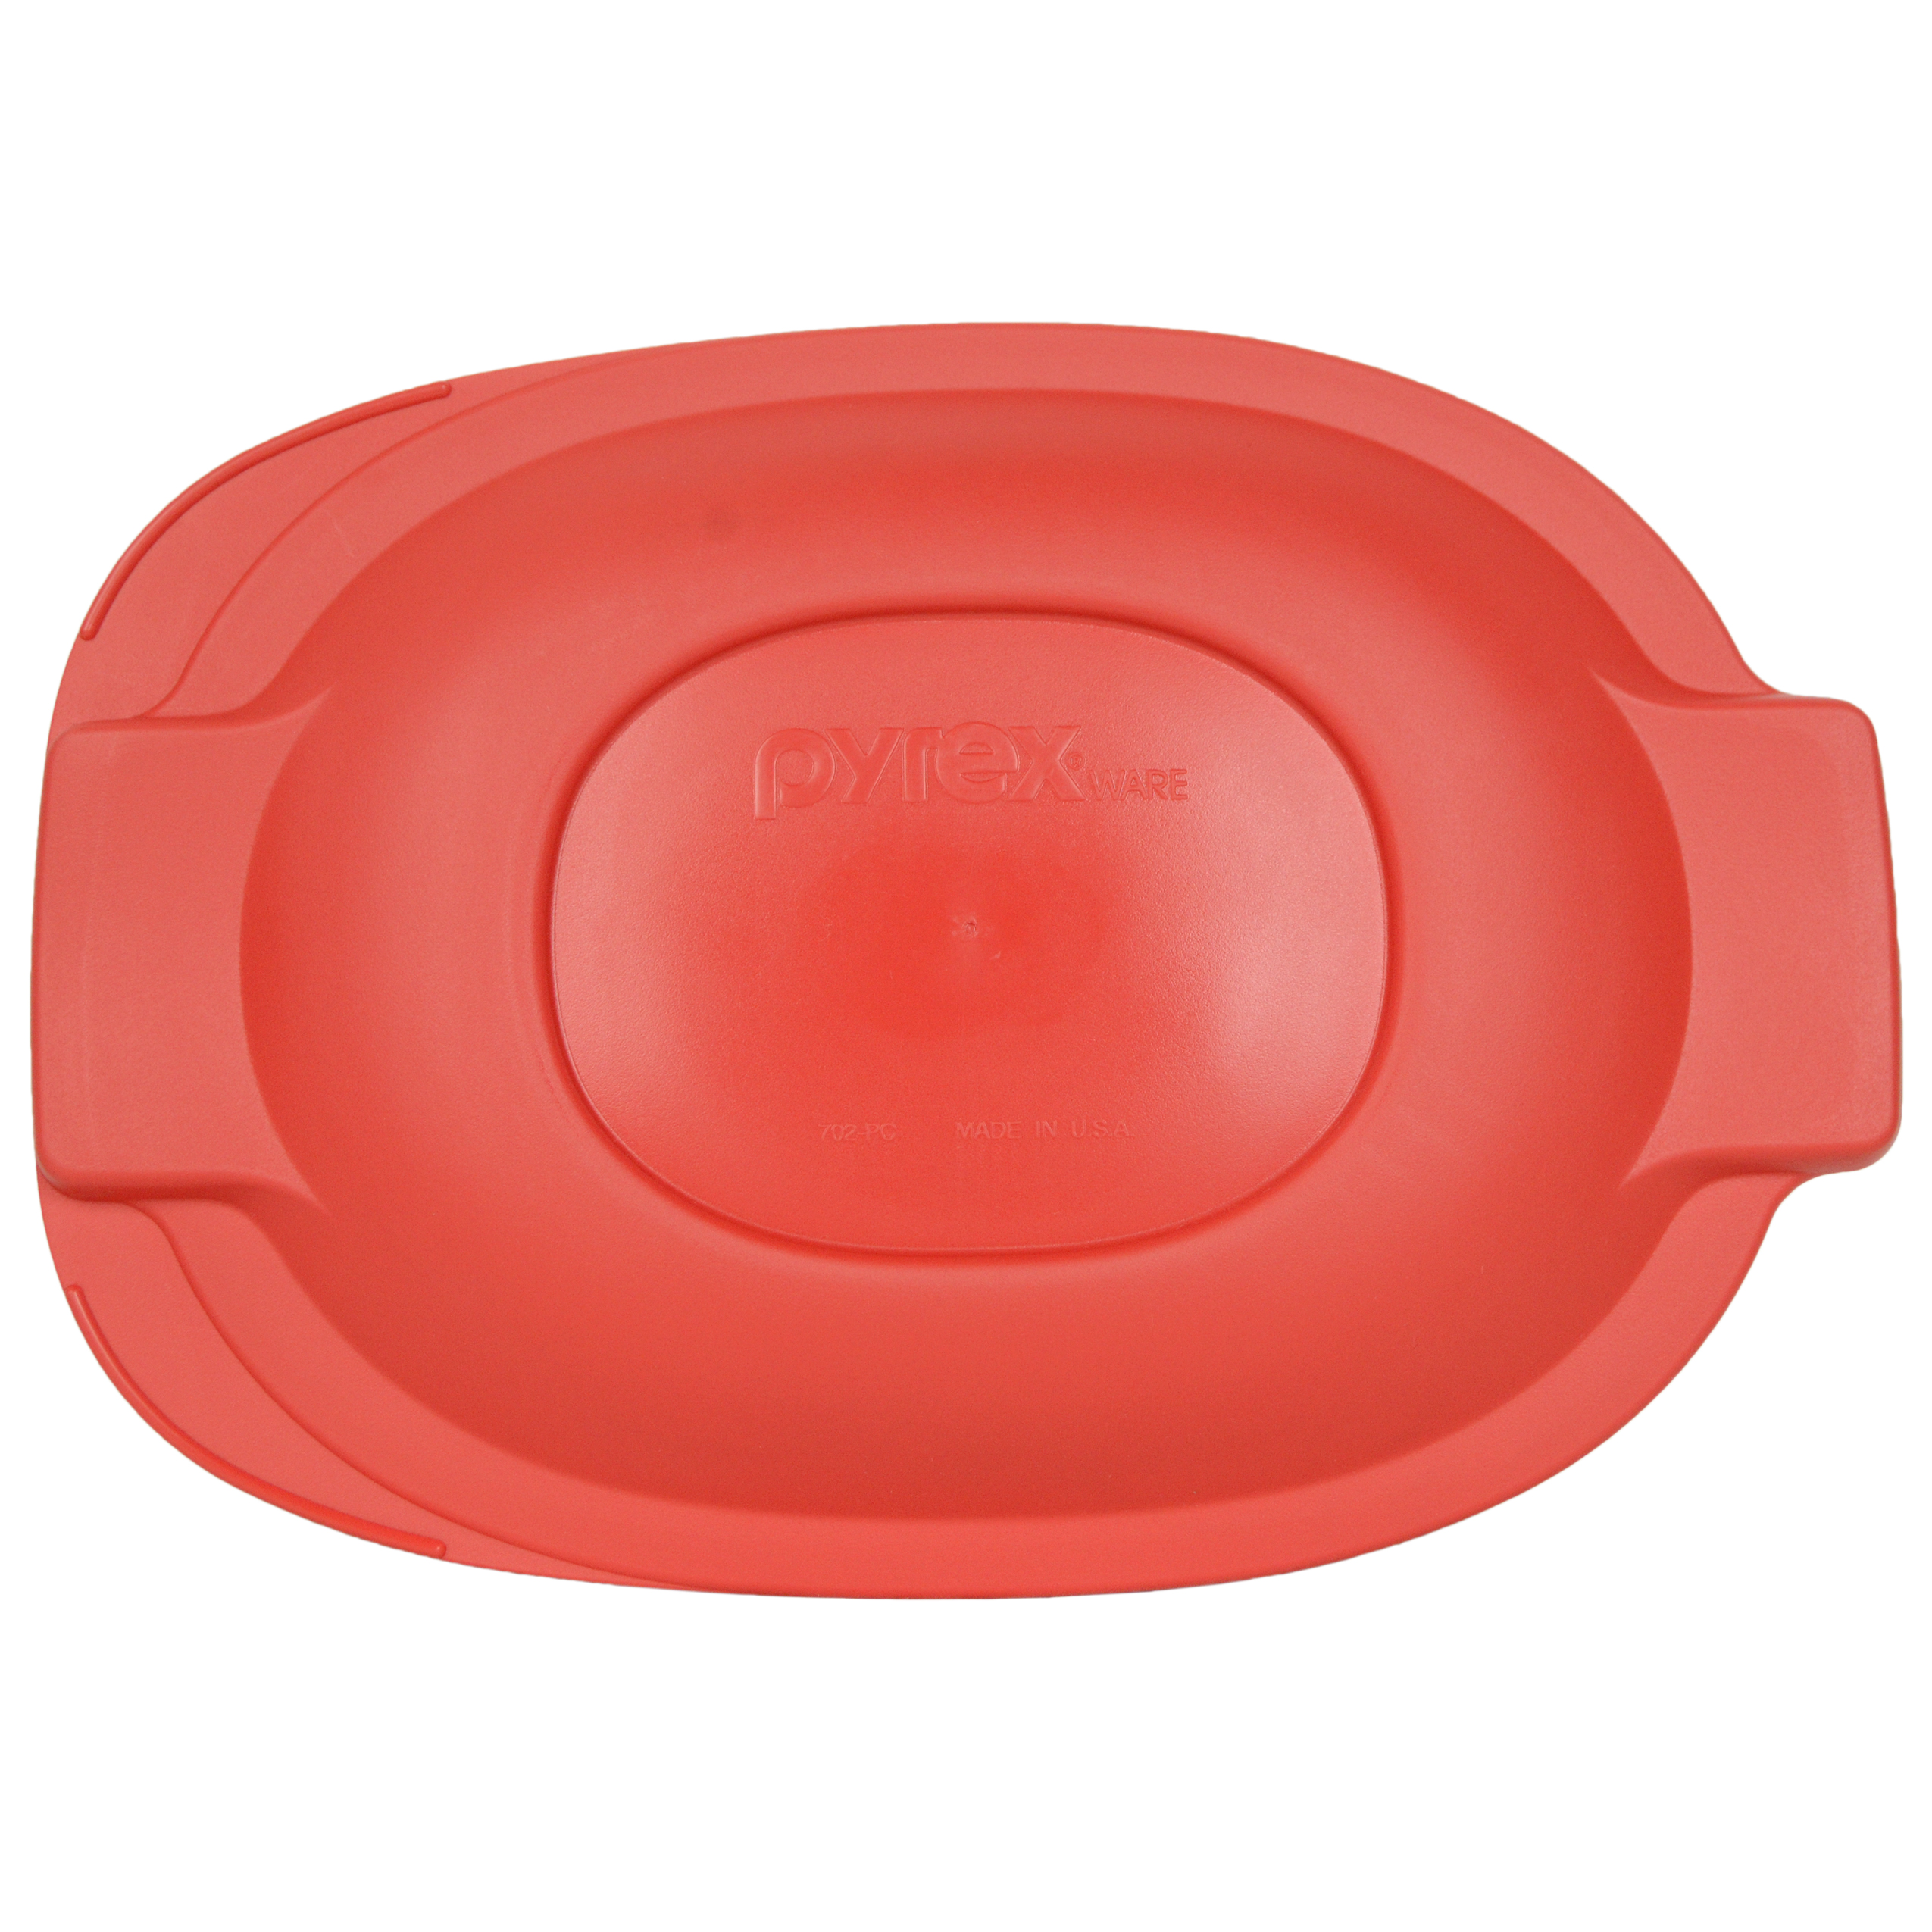 Pyrex Replacement Lid 702-PC Red Plastic Cover for Pyrex 2.5 Quart Glass Roaster Dish (Sold Separately)